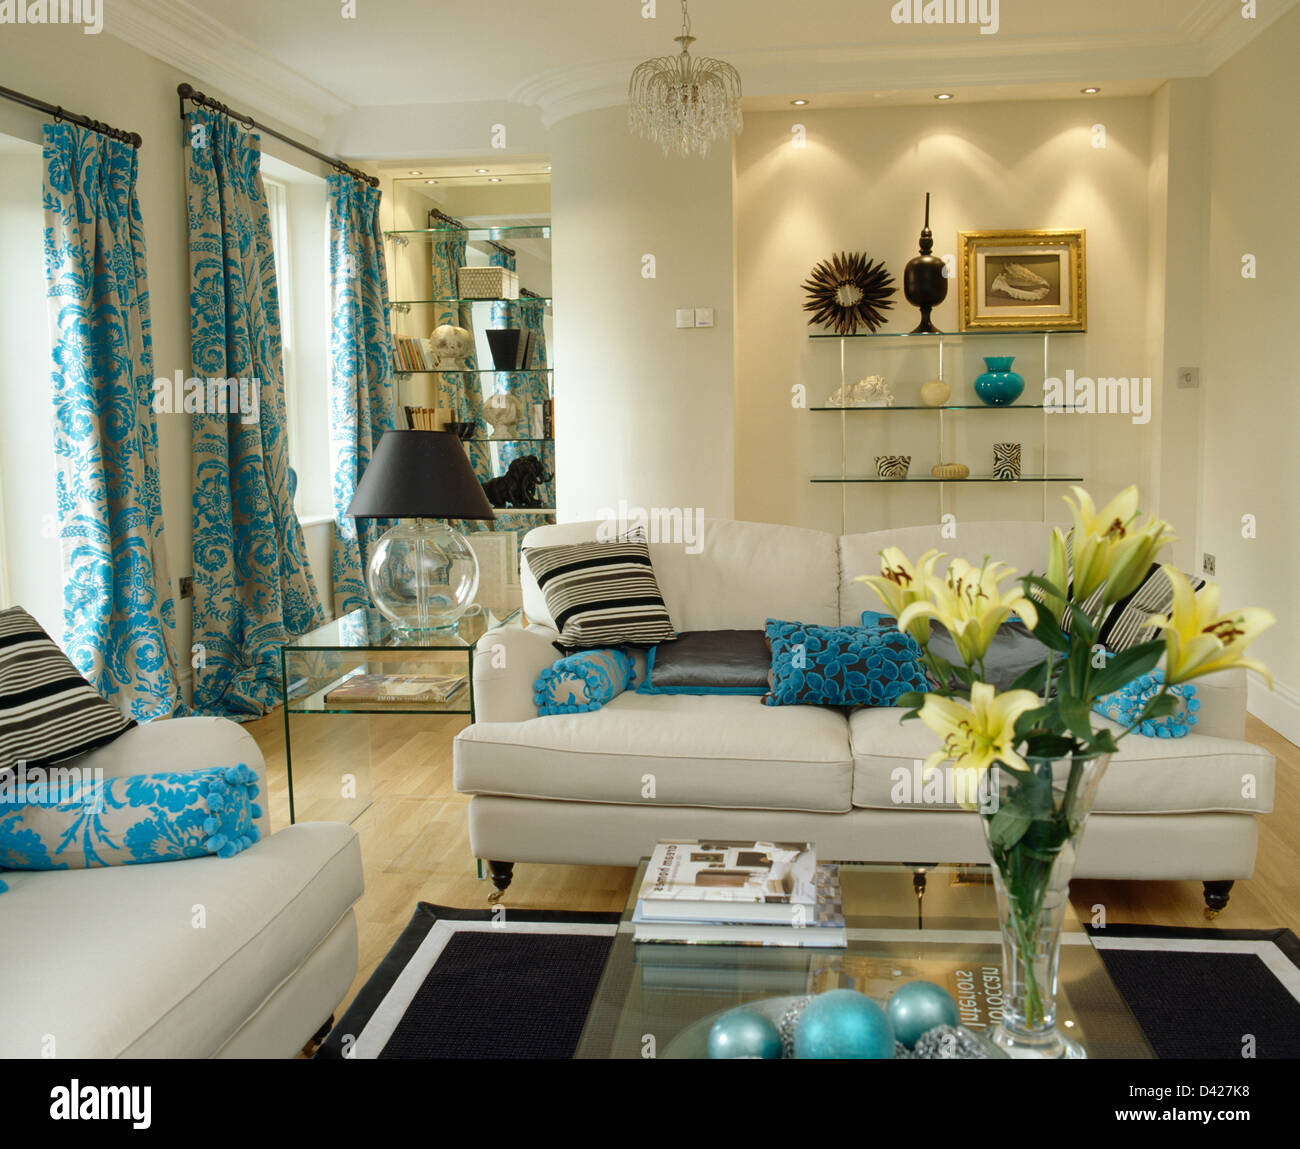 Recessed Lighting Above Alcove Shelving In Cream Living Room With Turquoise  Cushions On White Sofas Part 57